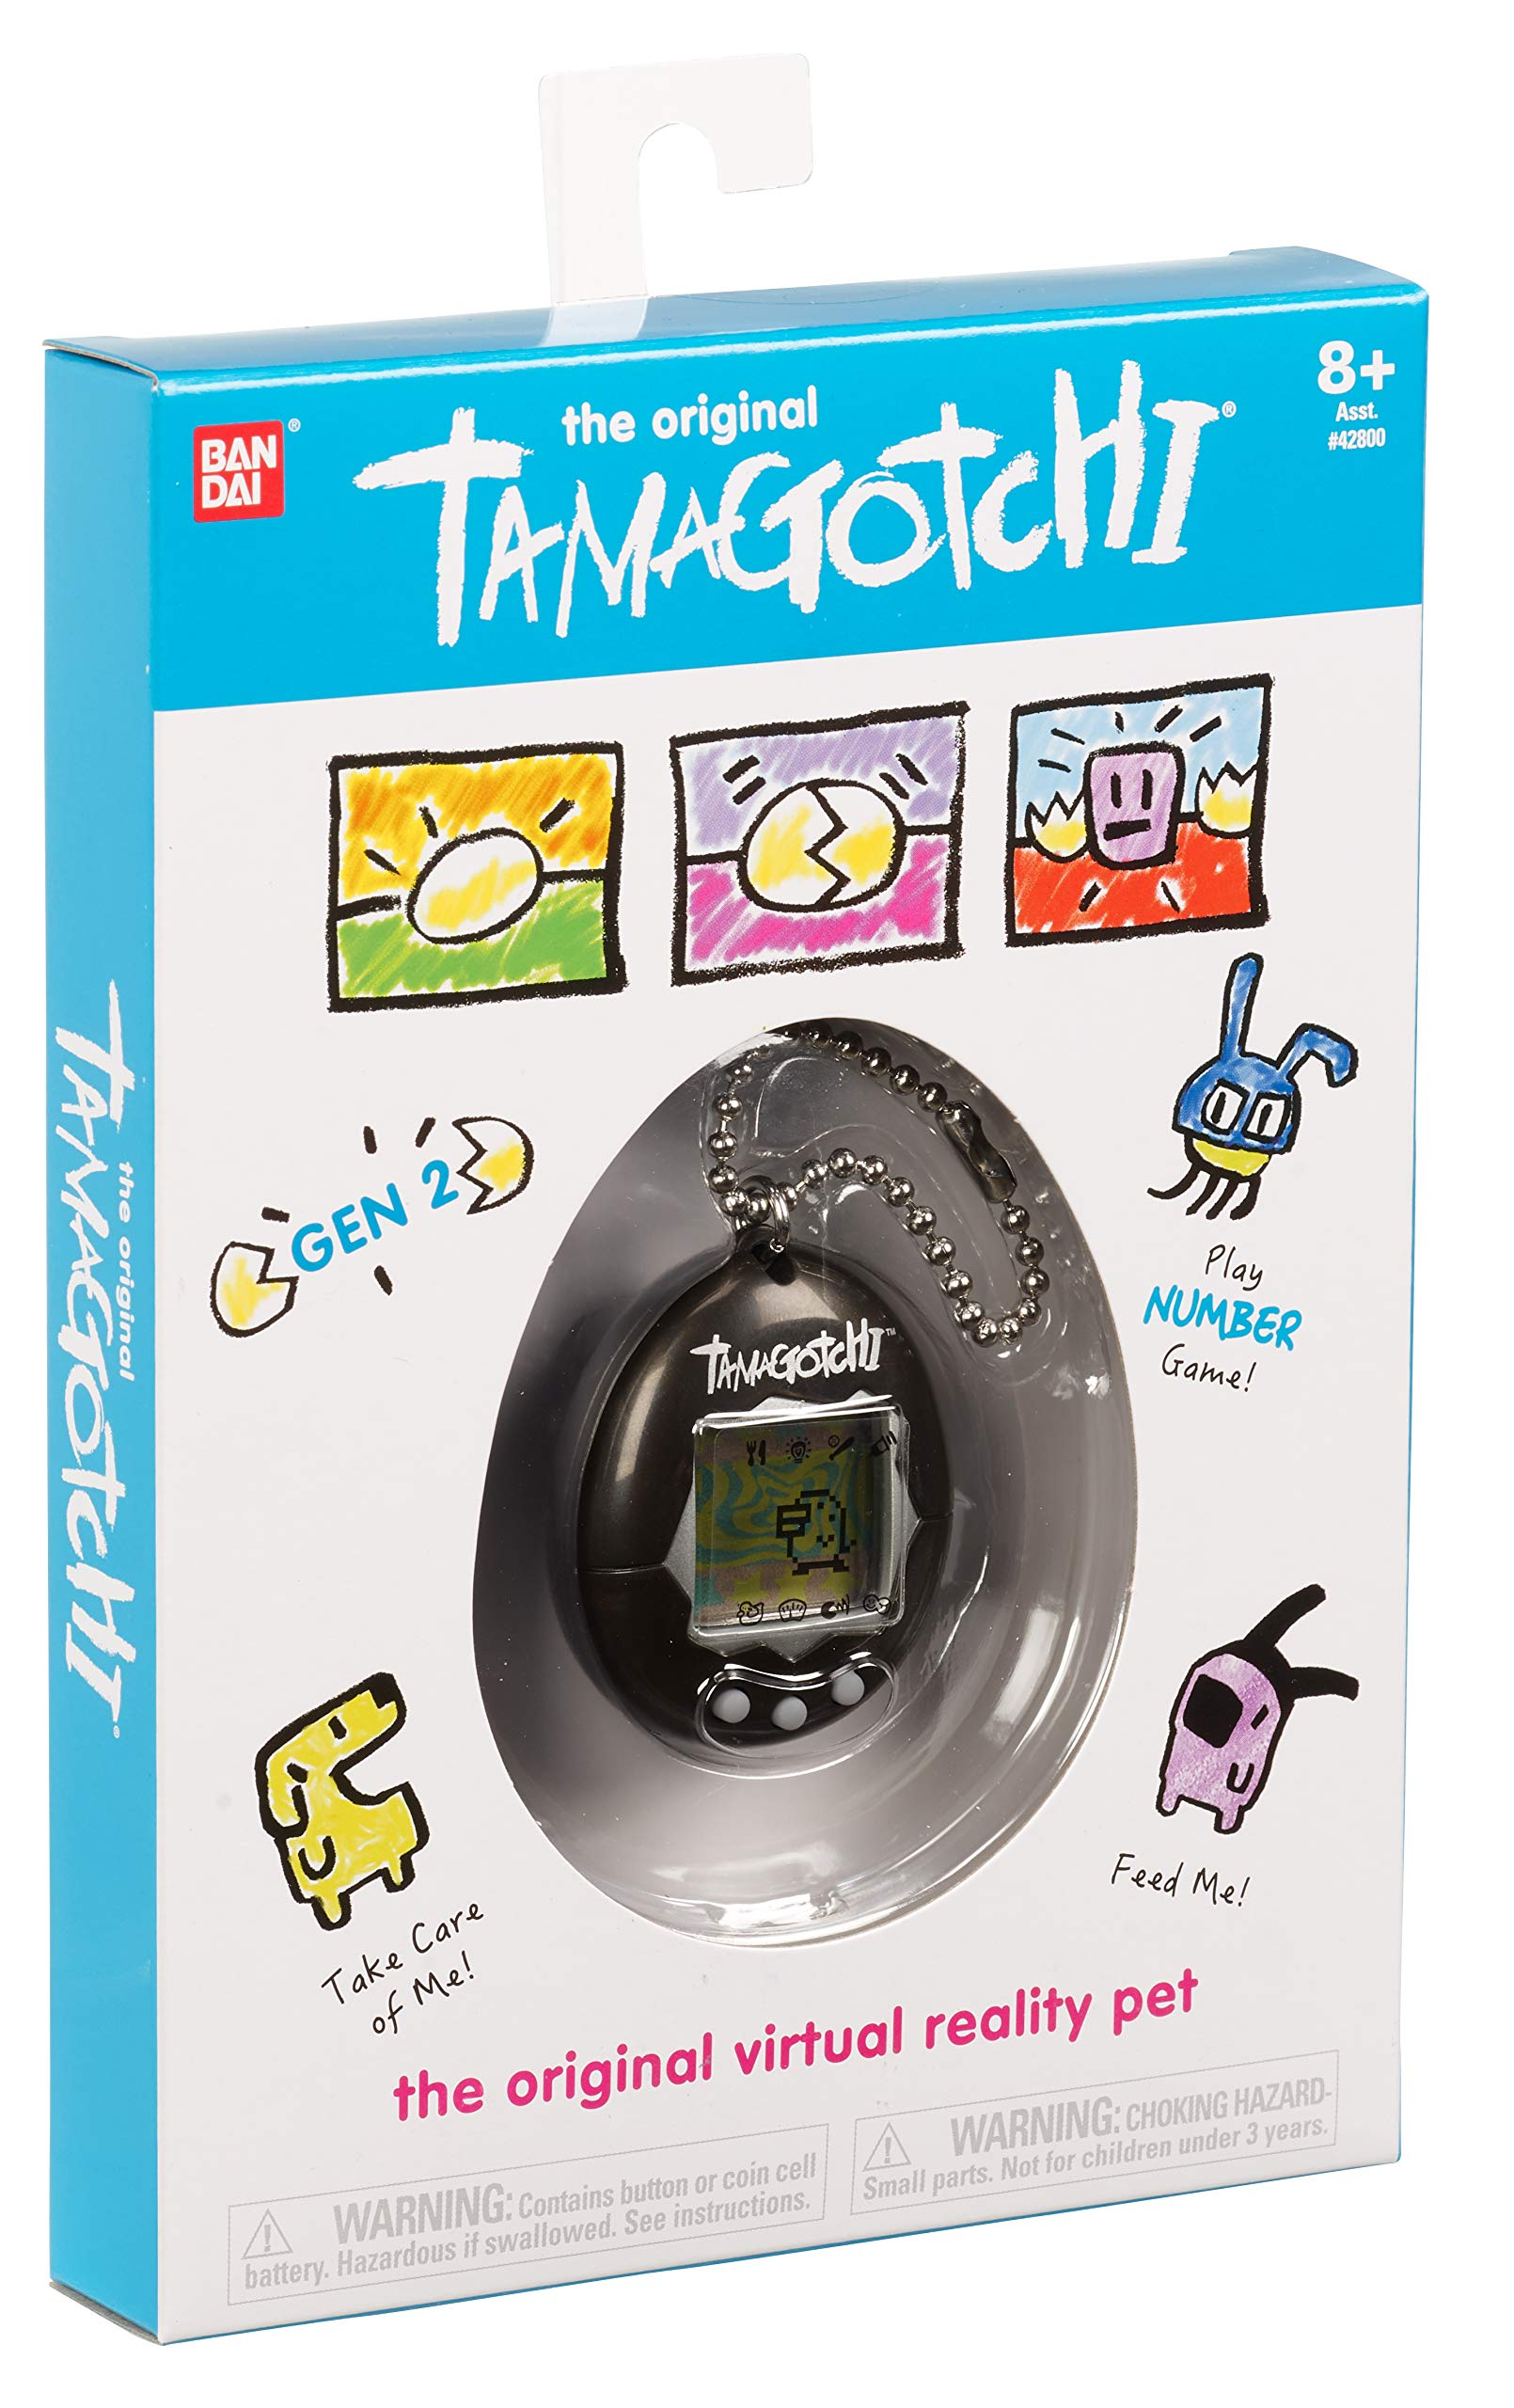 Tamagotchi Electronic Game, Black by Tamagotchi (Image #3)